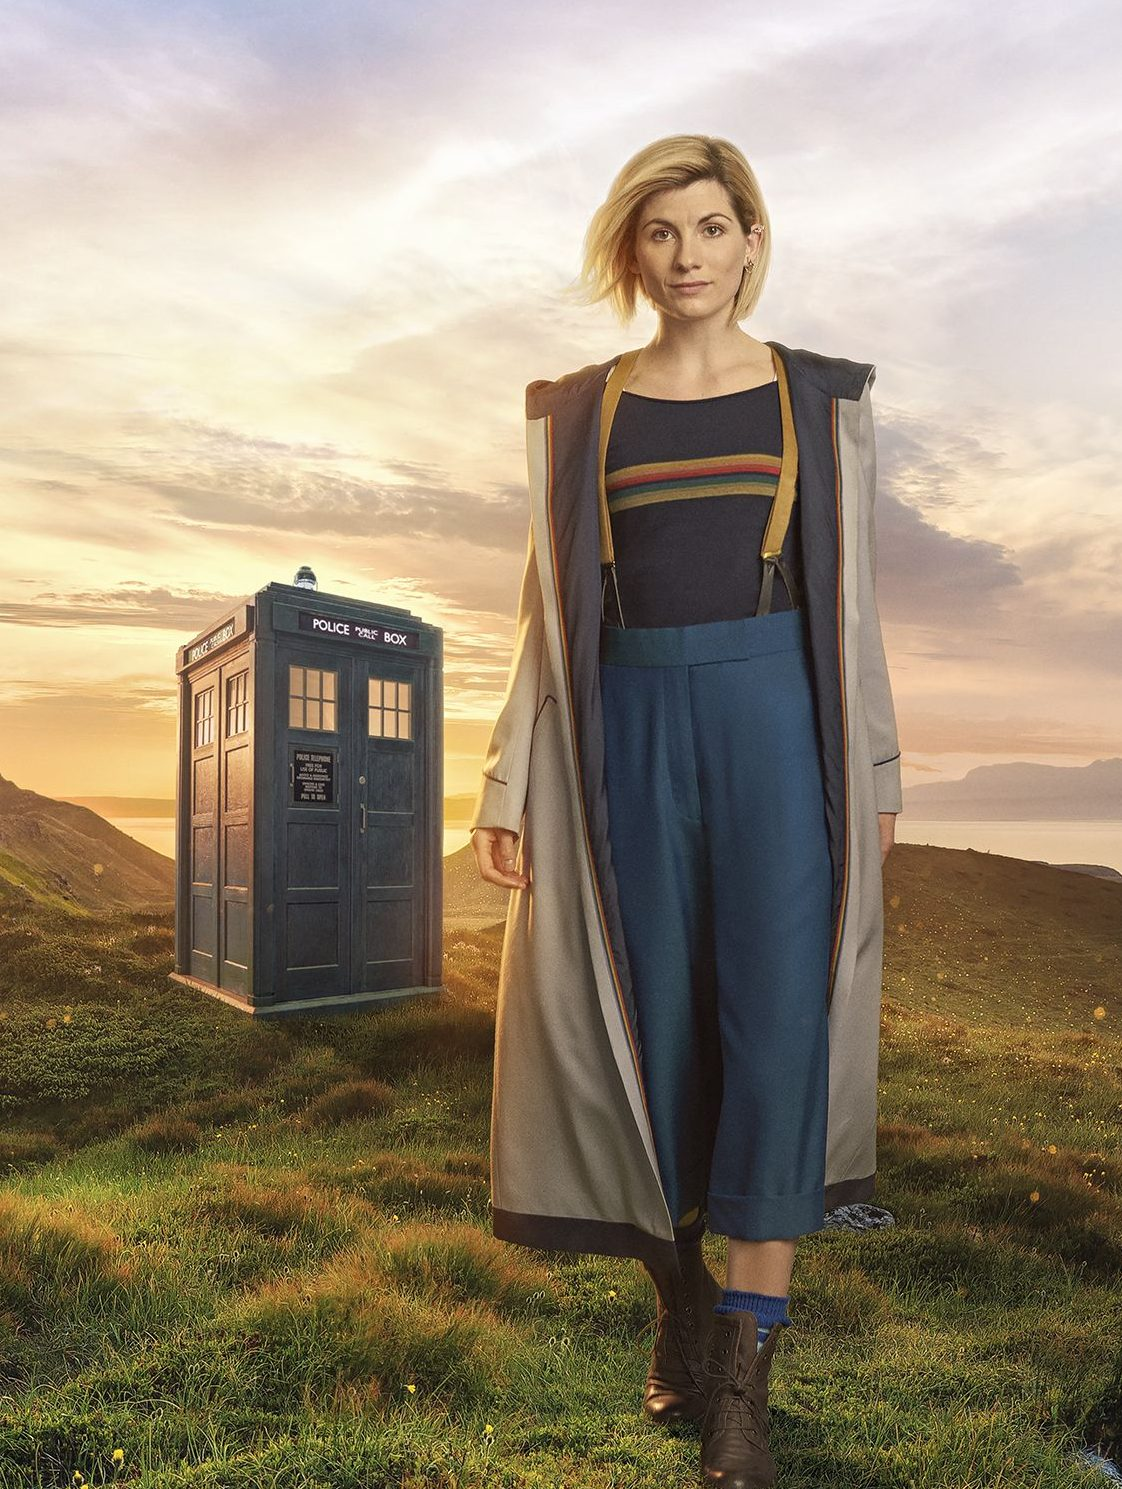 Can Doctor Who really change gender?